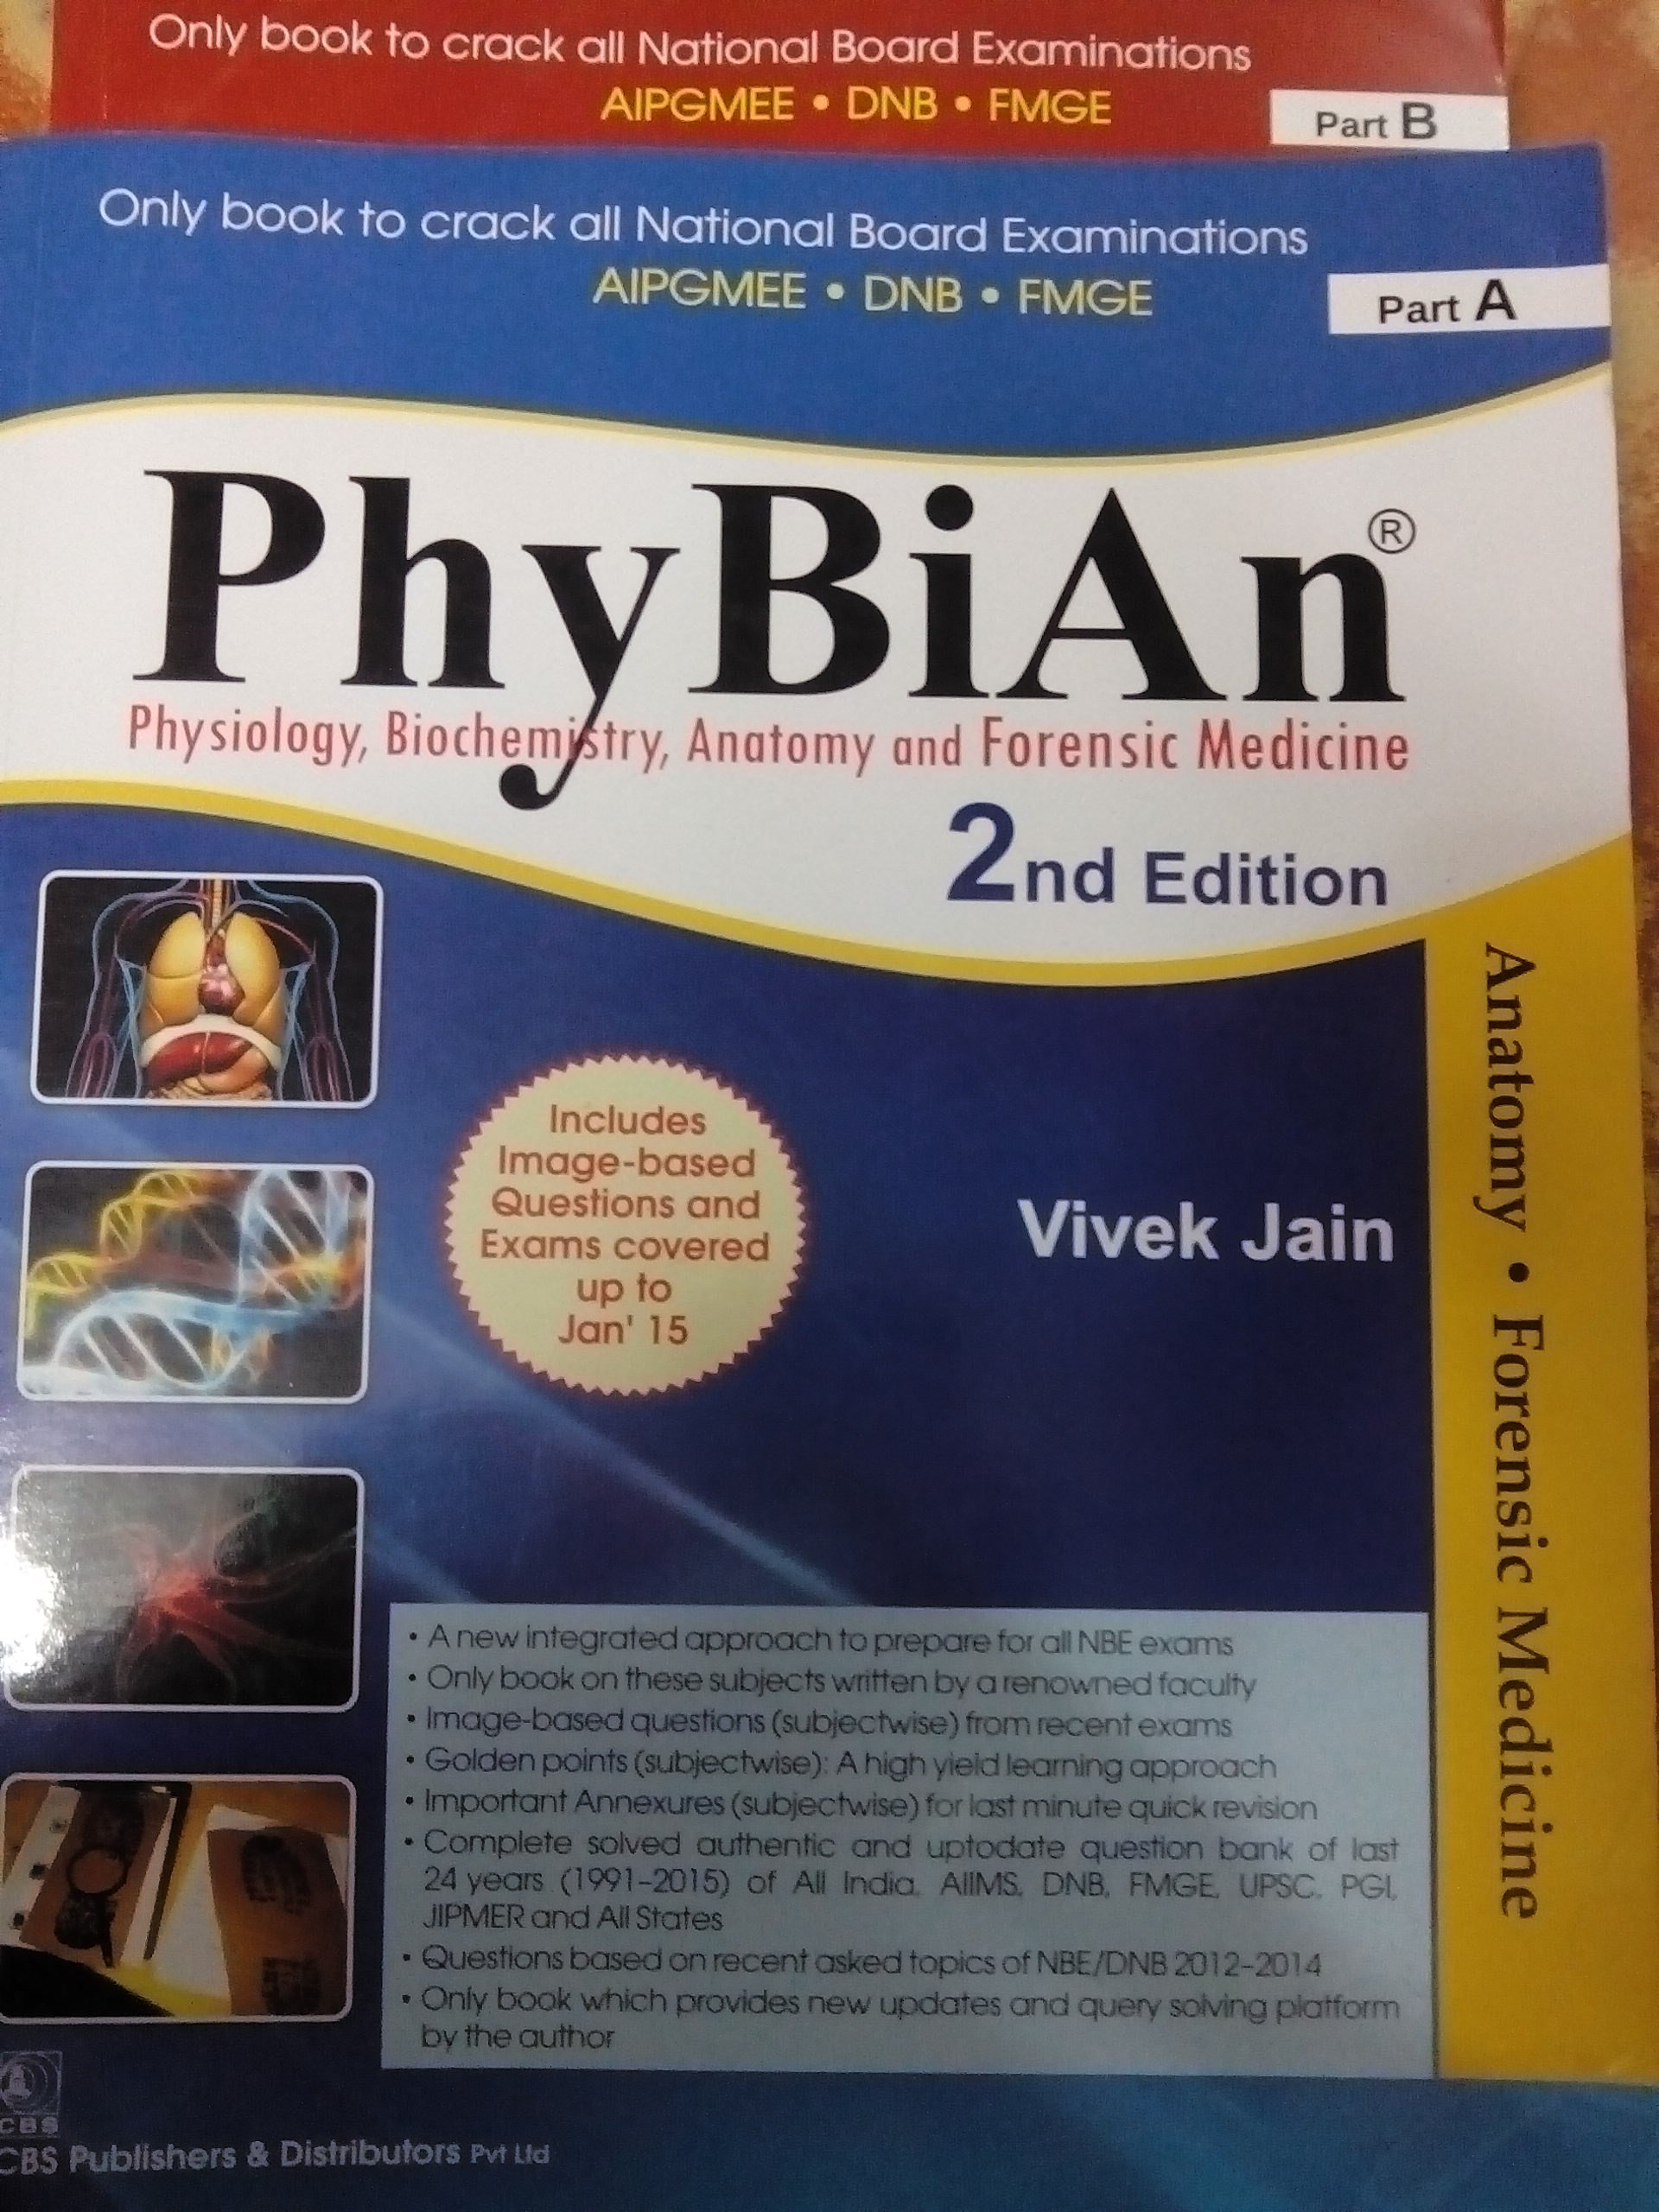 Buy PhyBiAn (Review of Anatomy Physiology Biochemistry Forensic ...